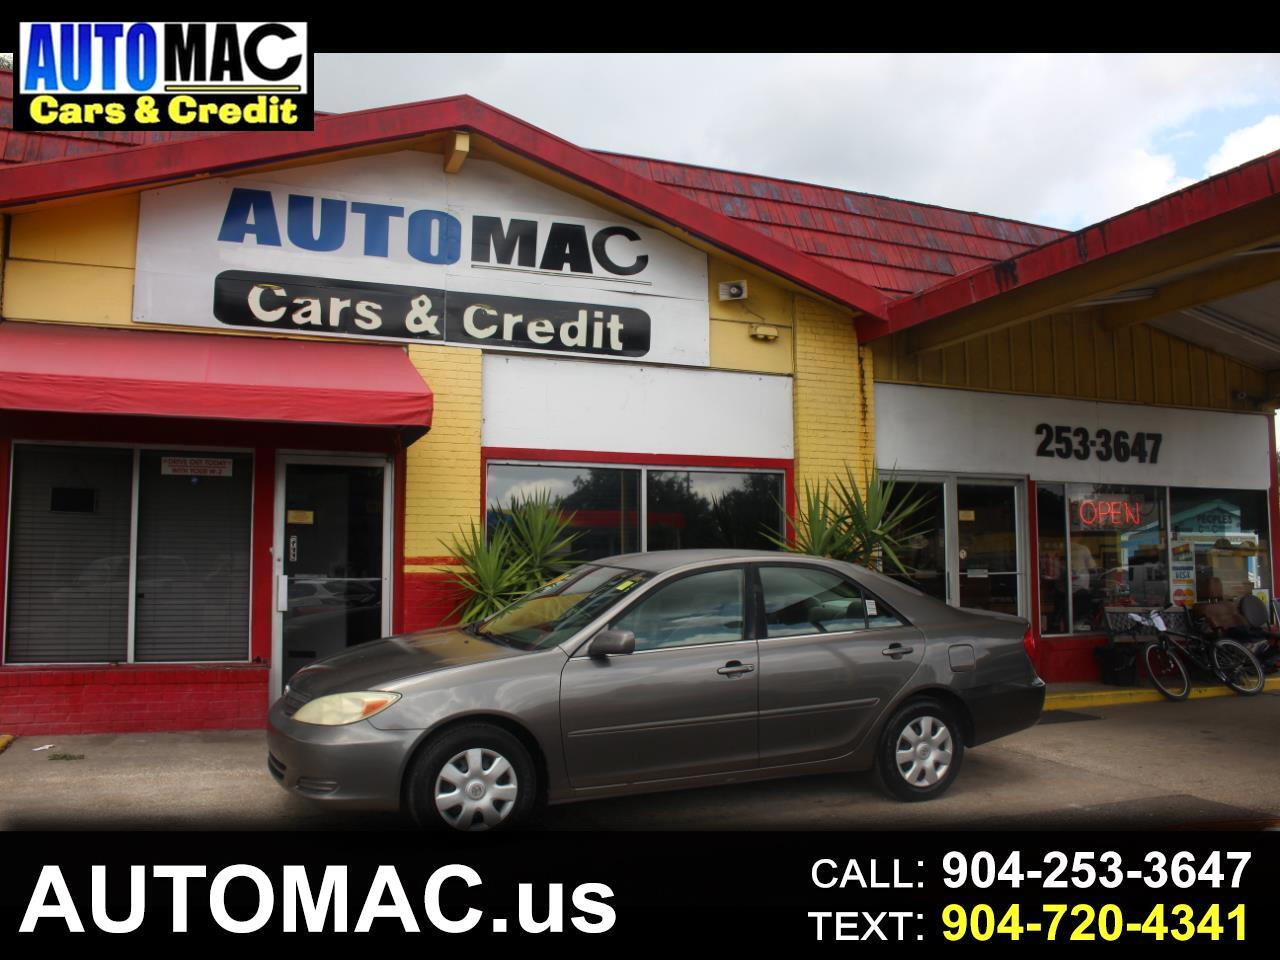 used cars for sale jacksonville fl 32254 automac cars credit jacksonville fl 32254 automac cars